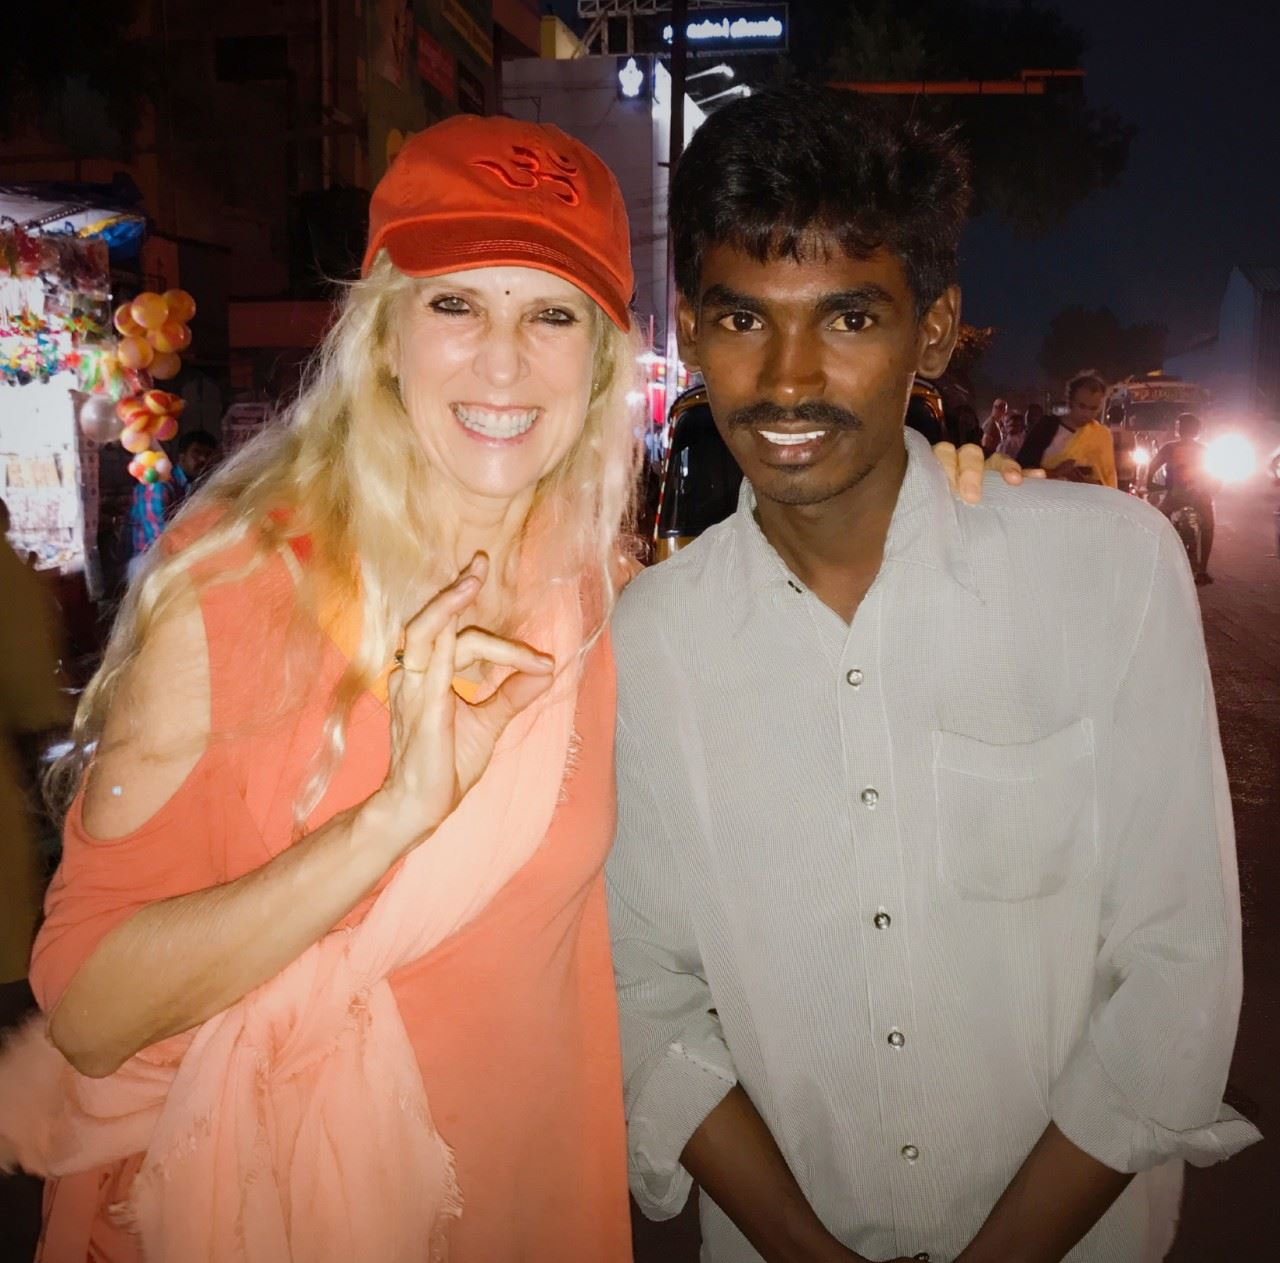 Tour Guide R.Madhavan with Yogini Kaliji